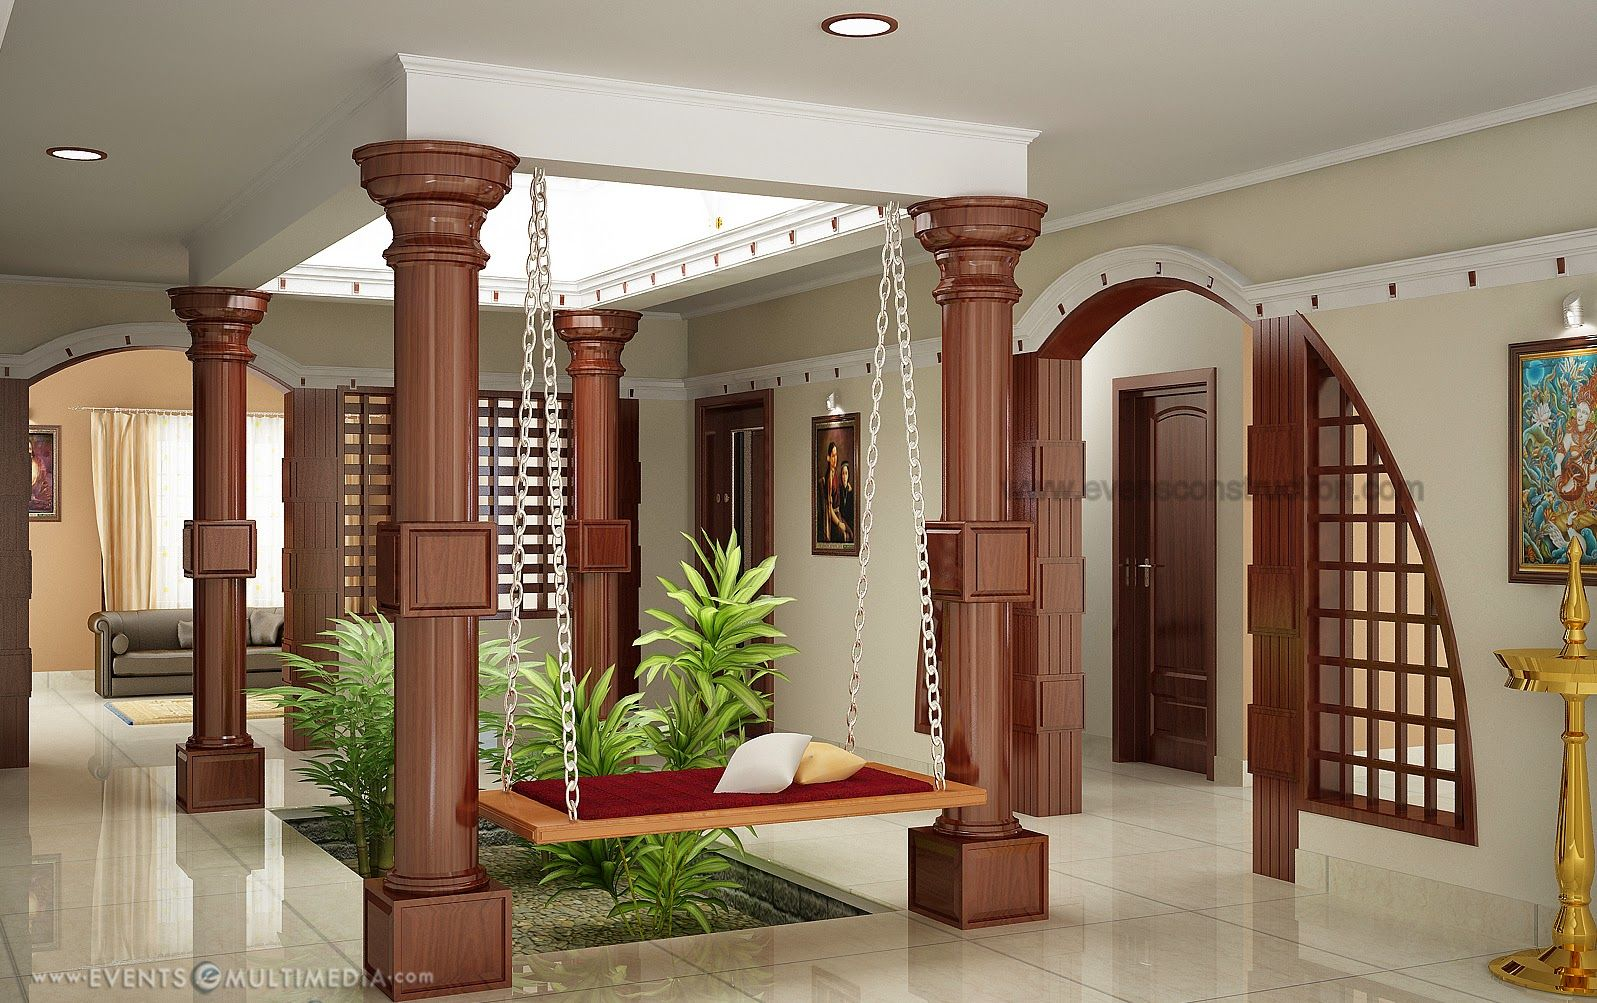 Interior design kerala google search inside and for Different interior designs of houses